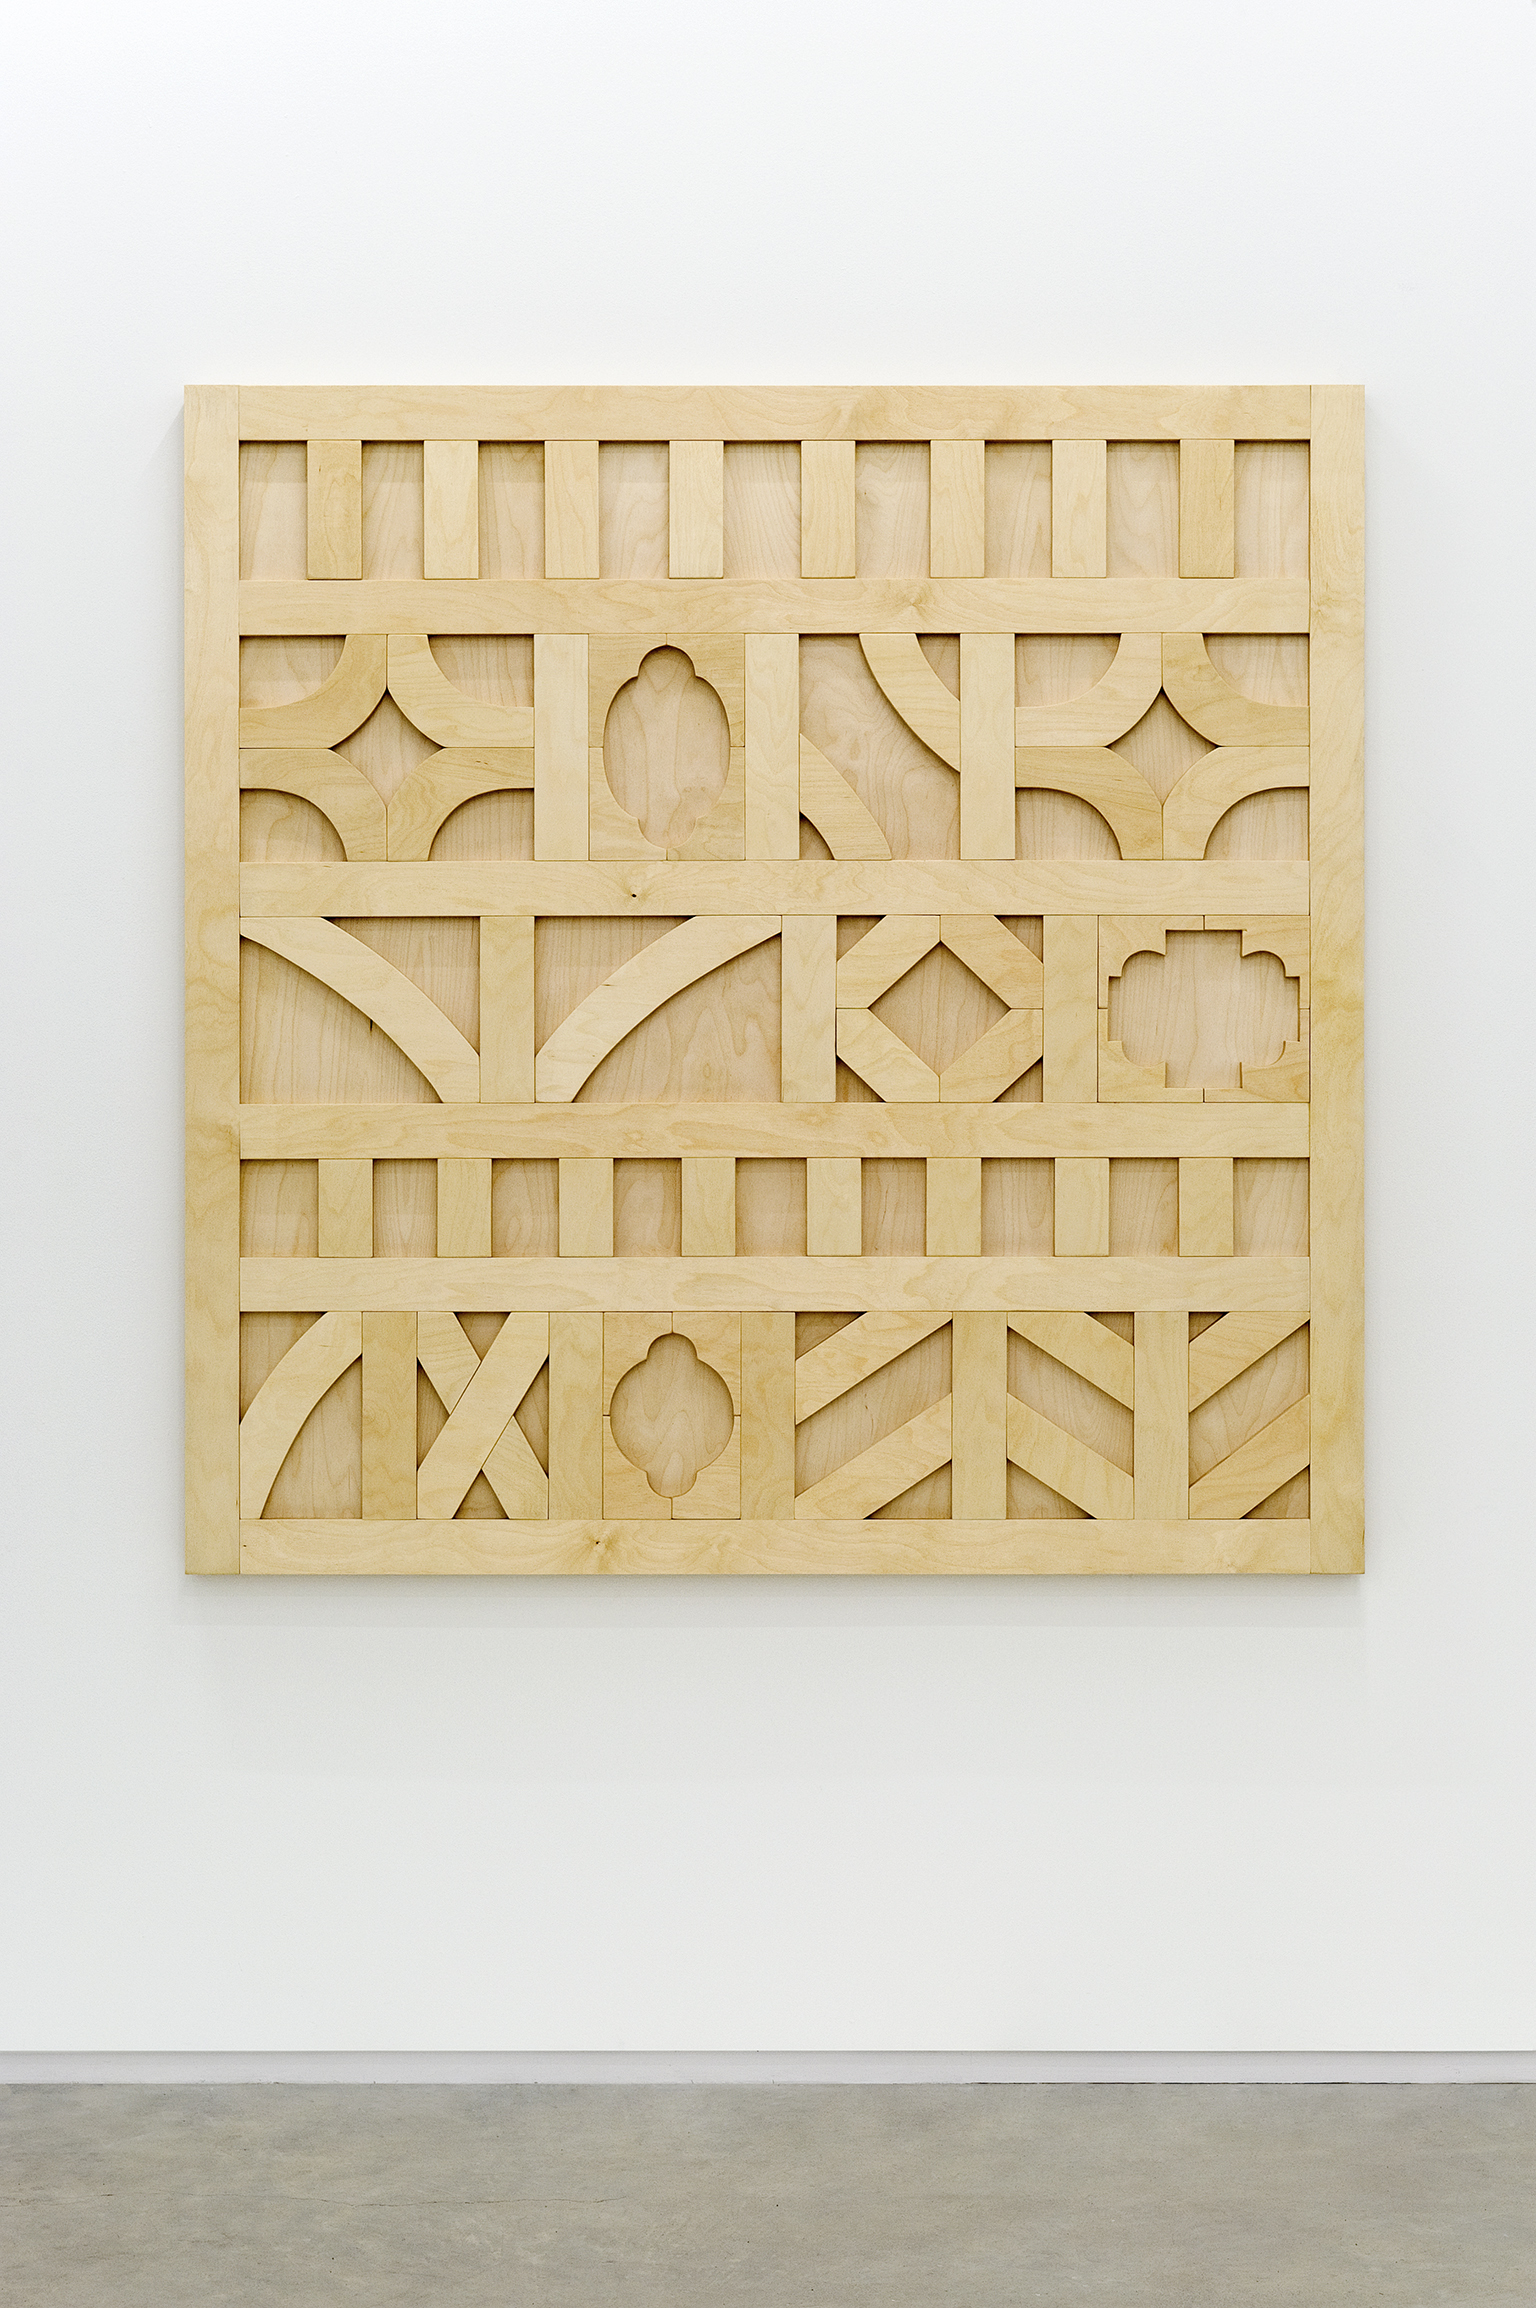 ​Alex Morrison, New Olde, 2011, baltic plywood, 60 x 60 x 2 1/4 in. (152 x 152 x 6 cm) by